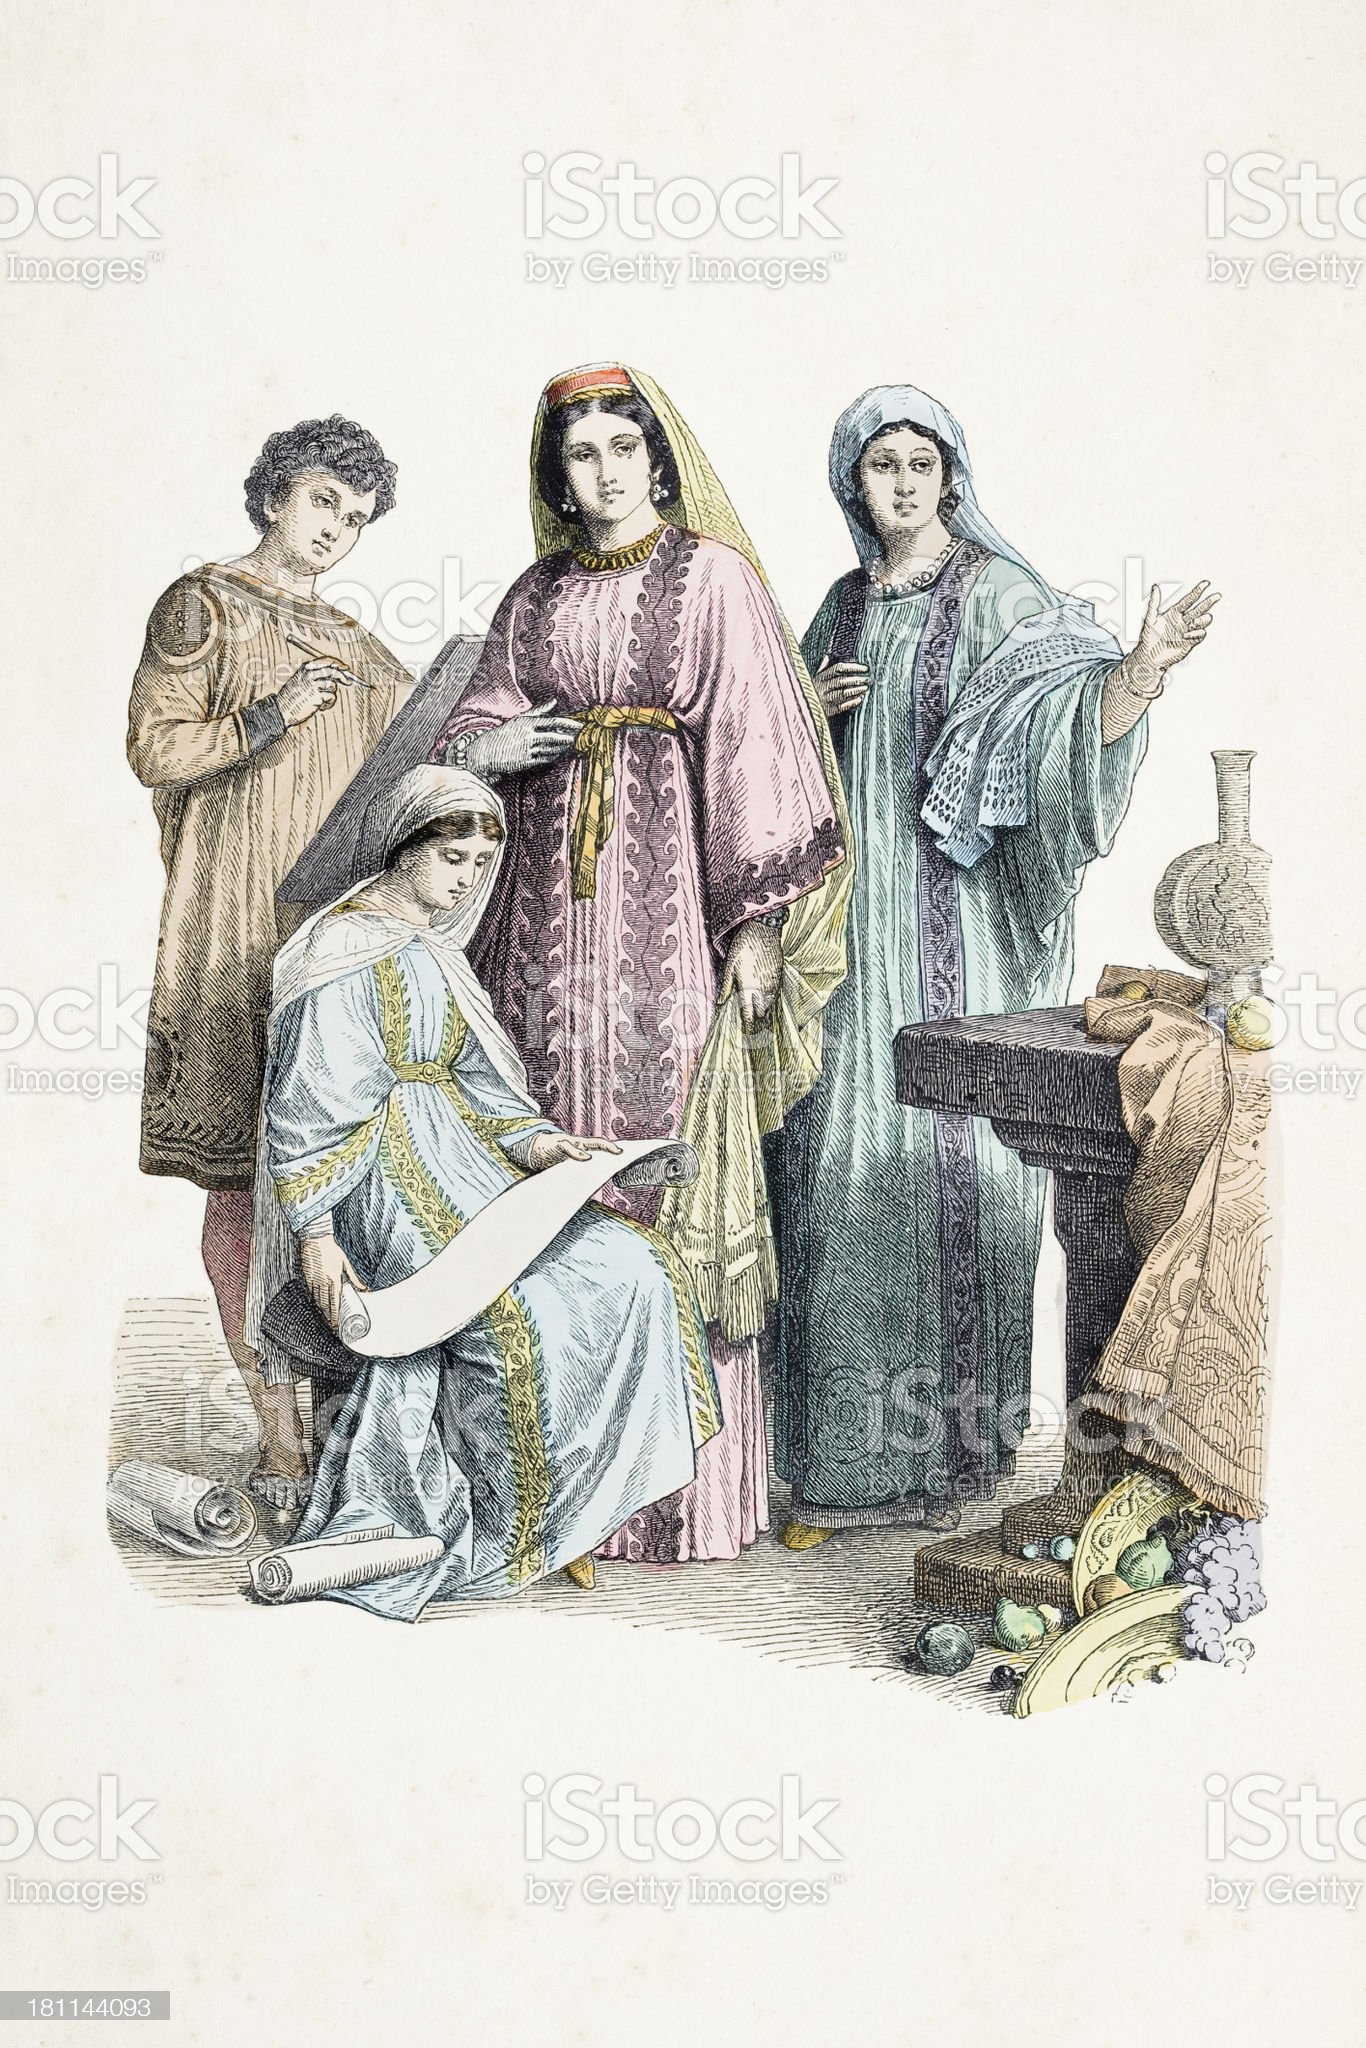 Group of christians with different costumes from the 4th century royalty-free stock vector art